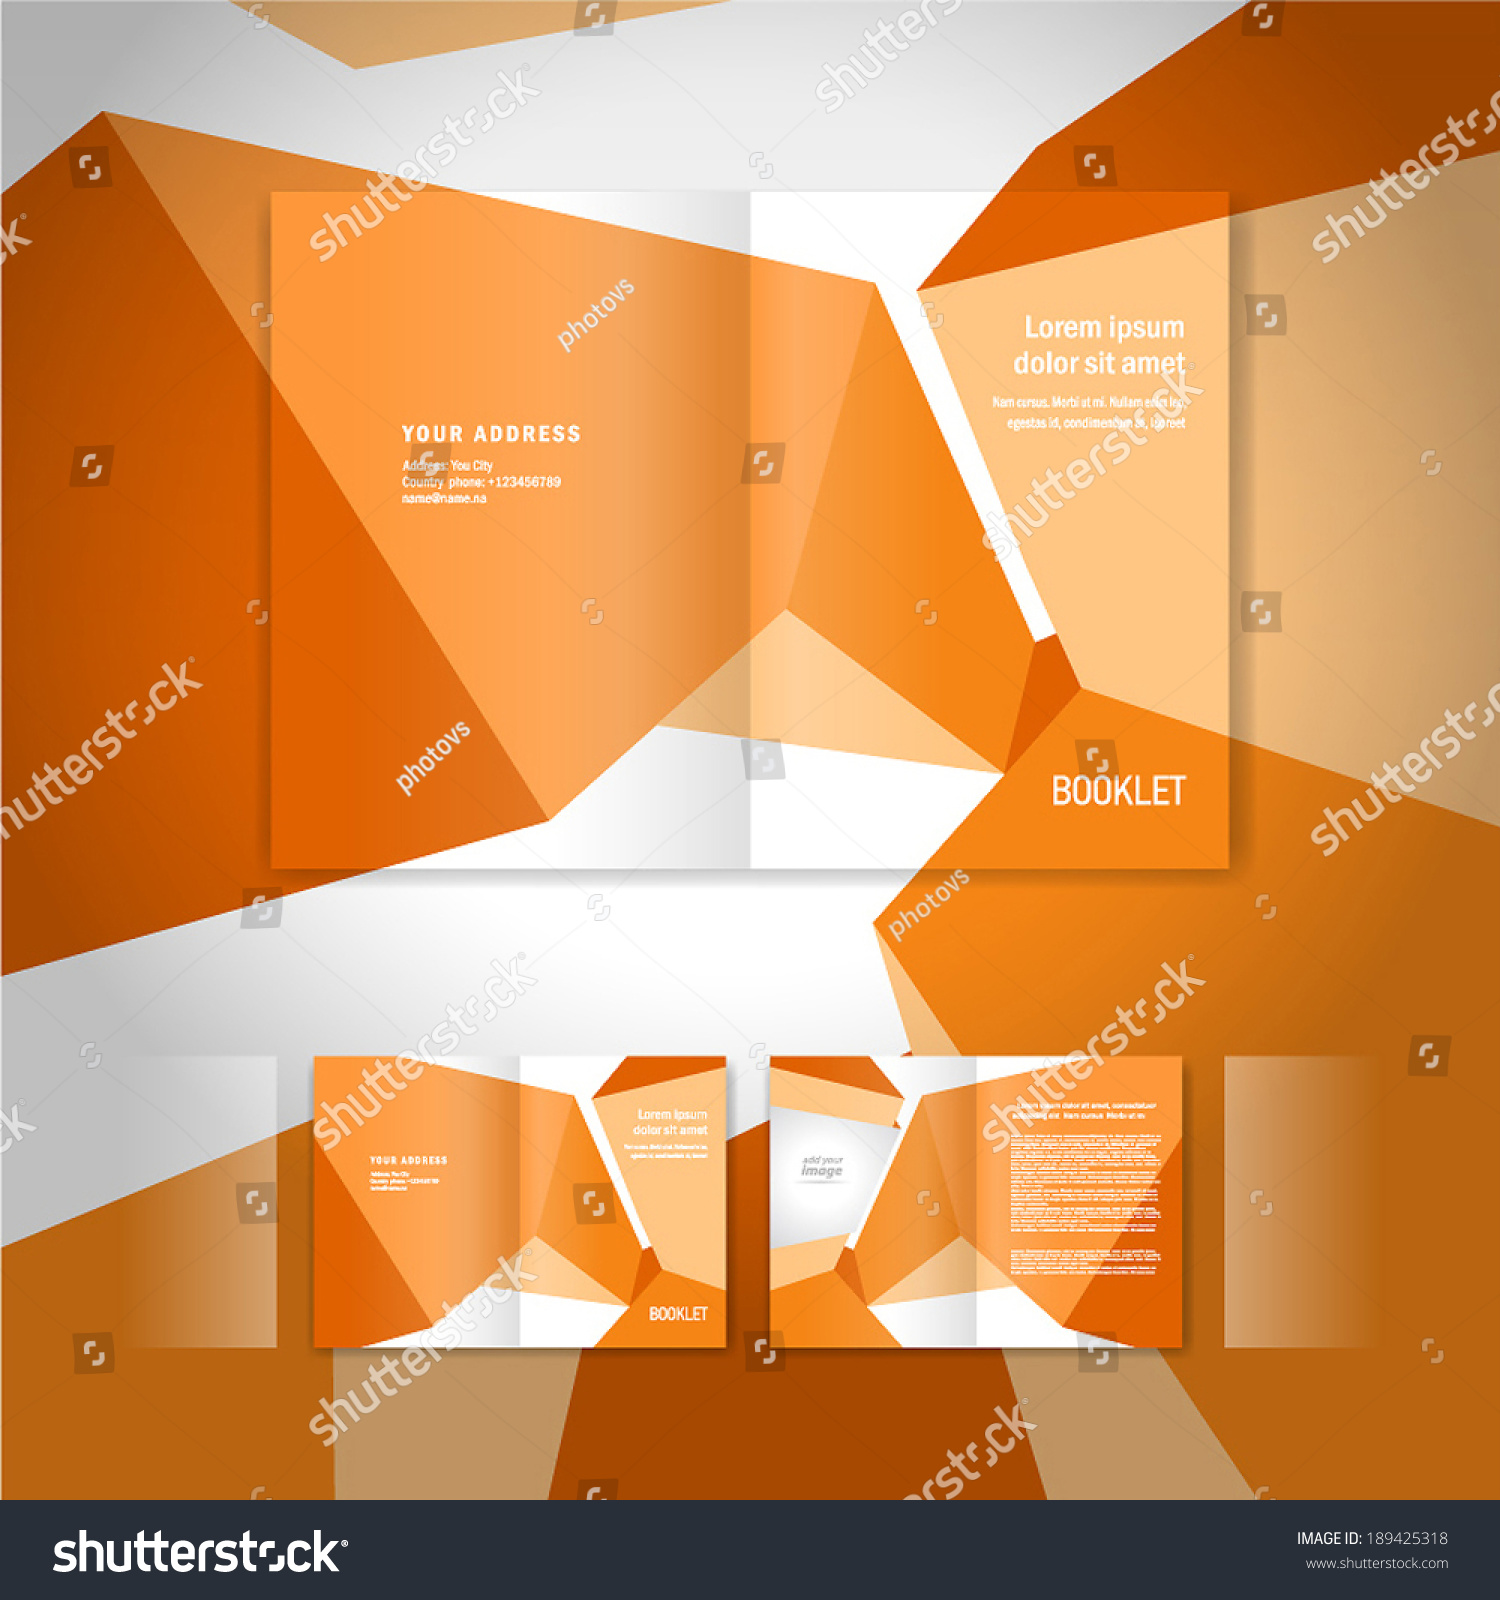 Sample Booklet Templates annual report cover template construction ...